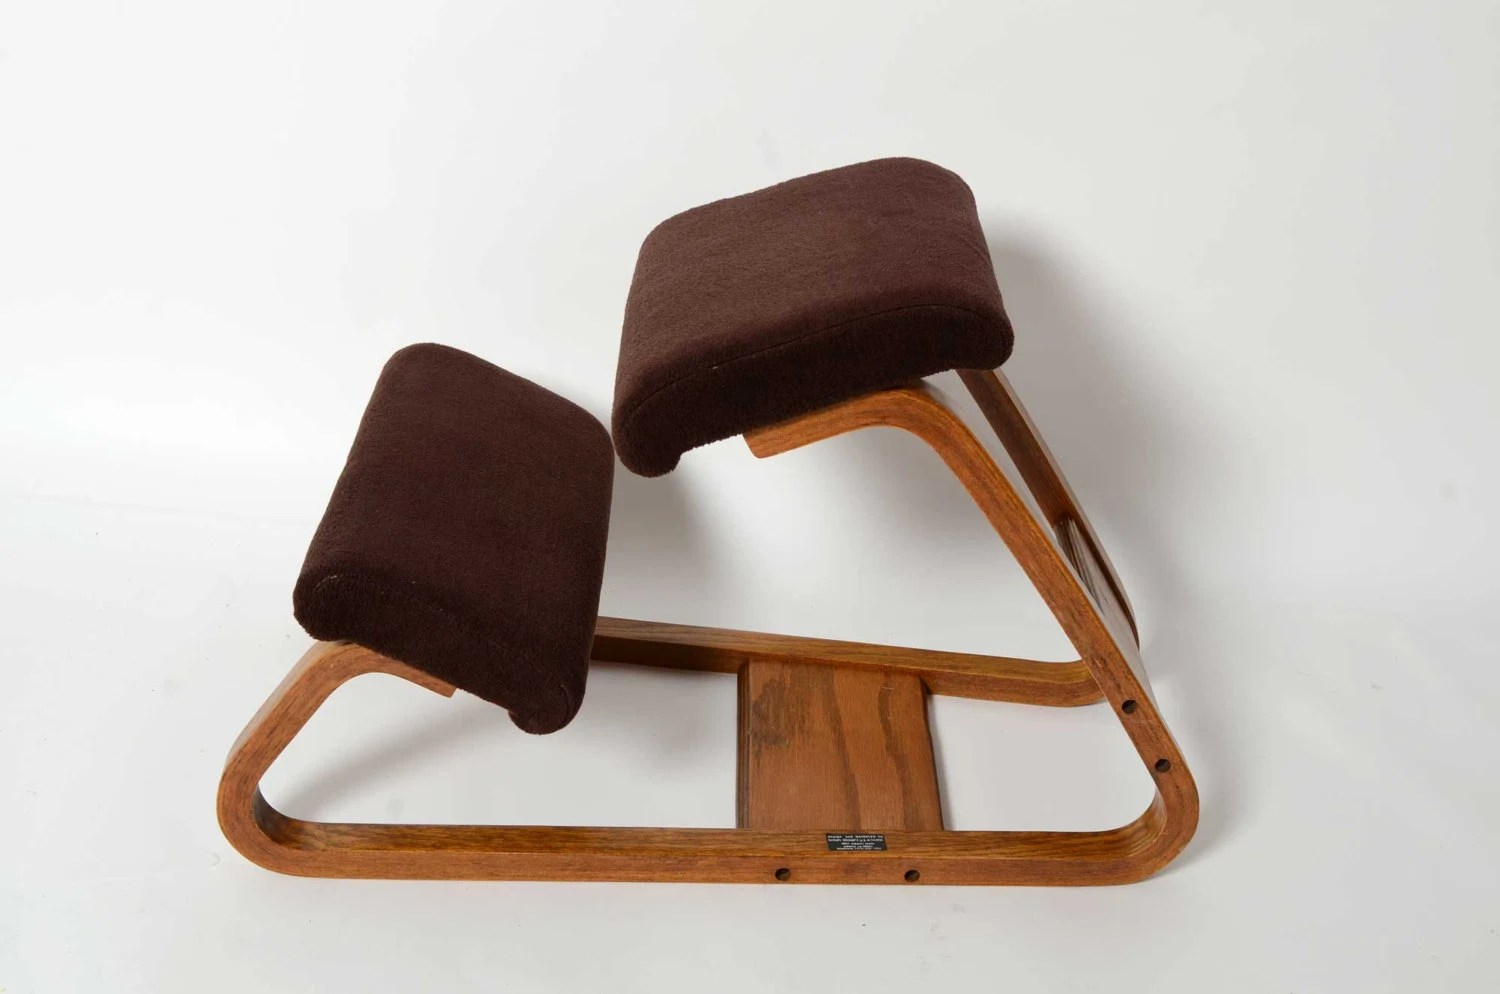 Ergonomic Chair Kneeling Ergonomic Kneeling Chair Mid Century Danish Modern Bent Wood